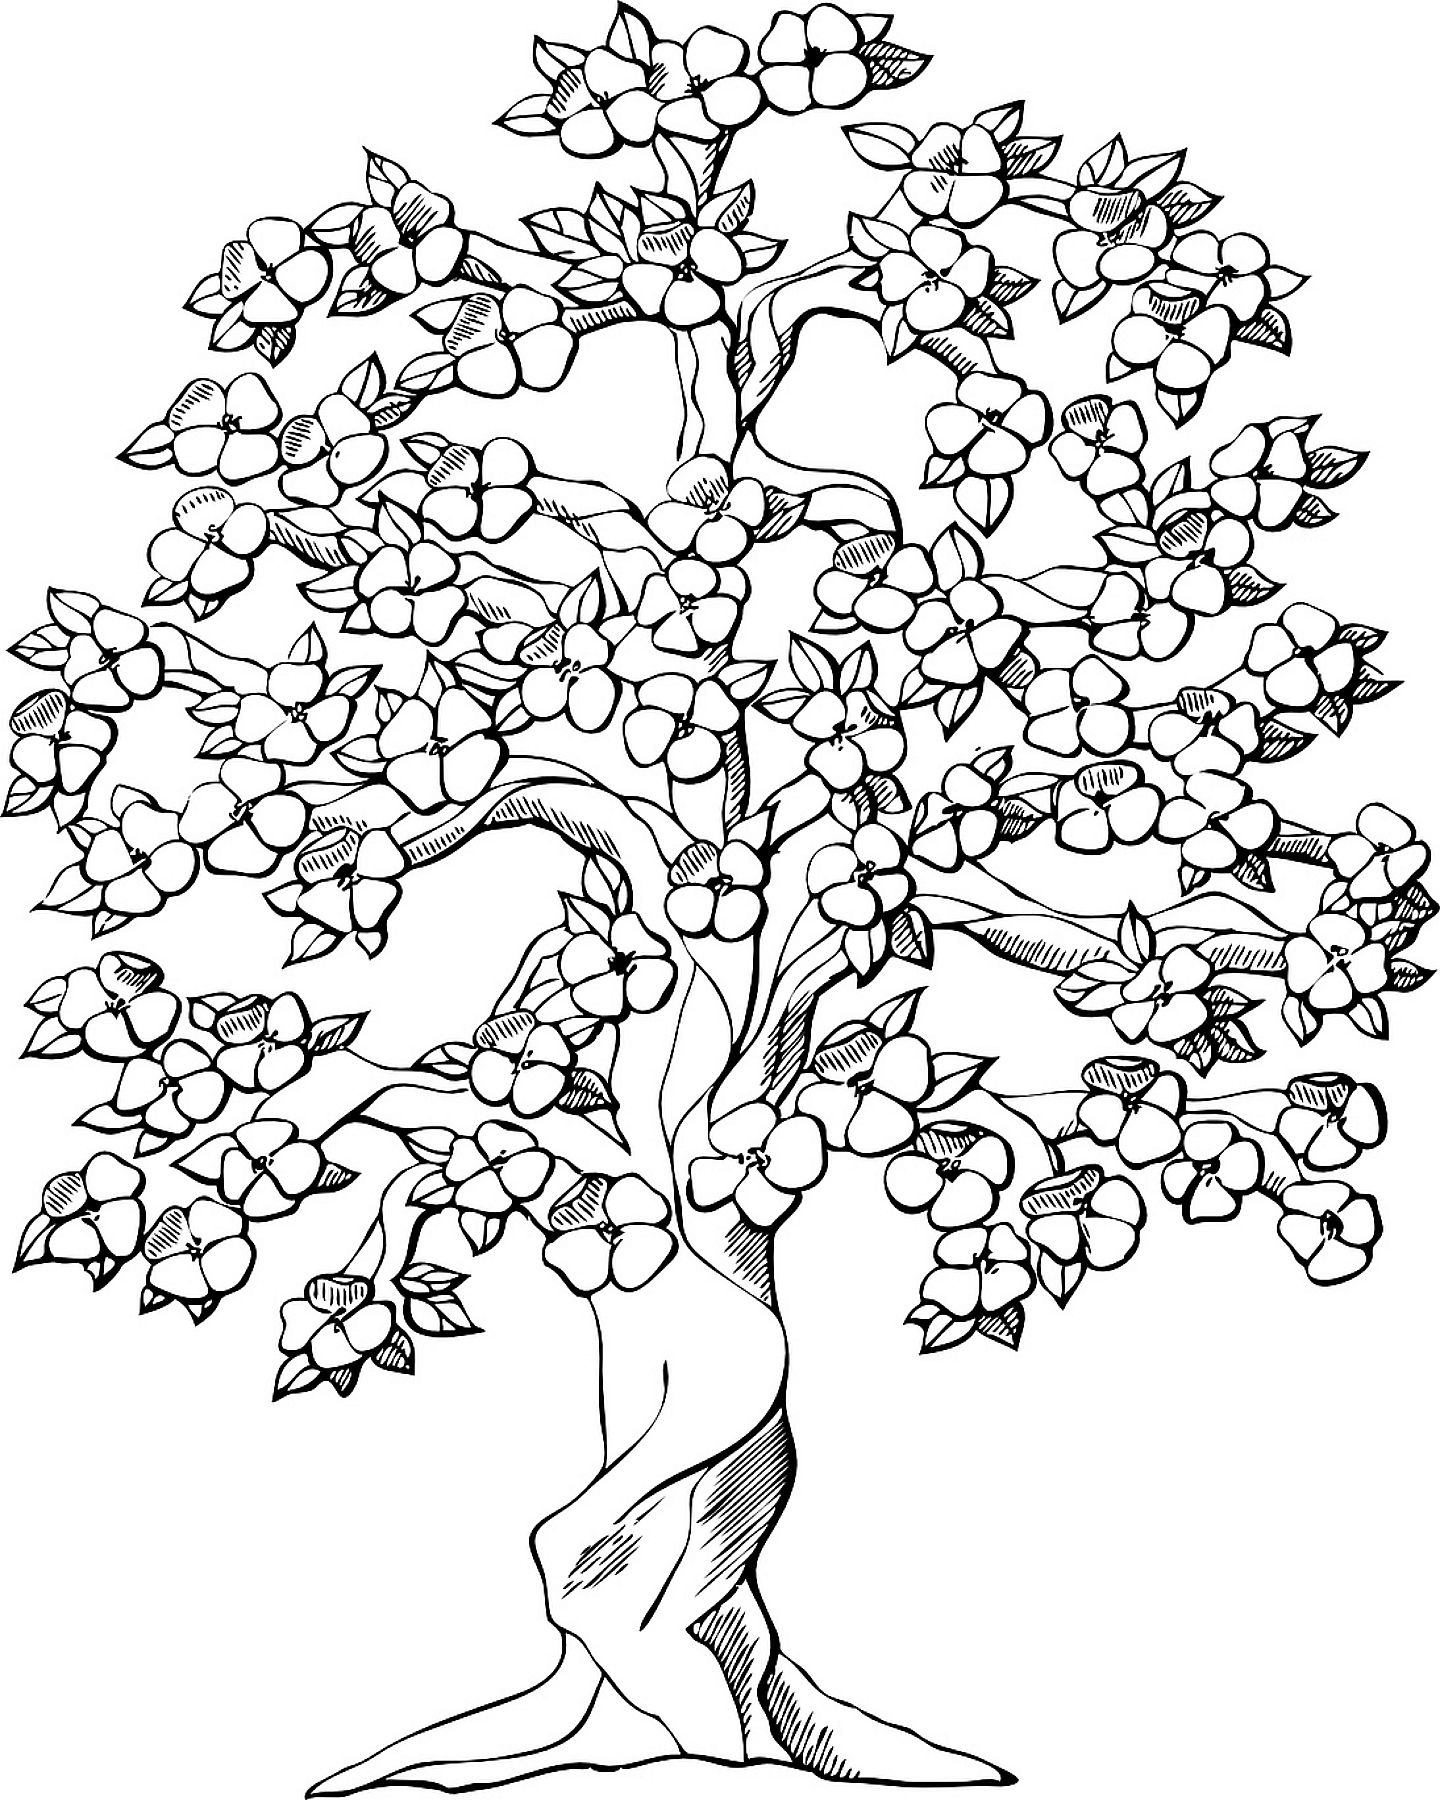 Plumeria Flowering Tree Coloring Page Tree coloring page